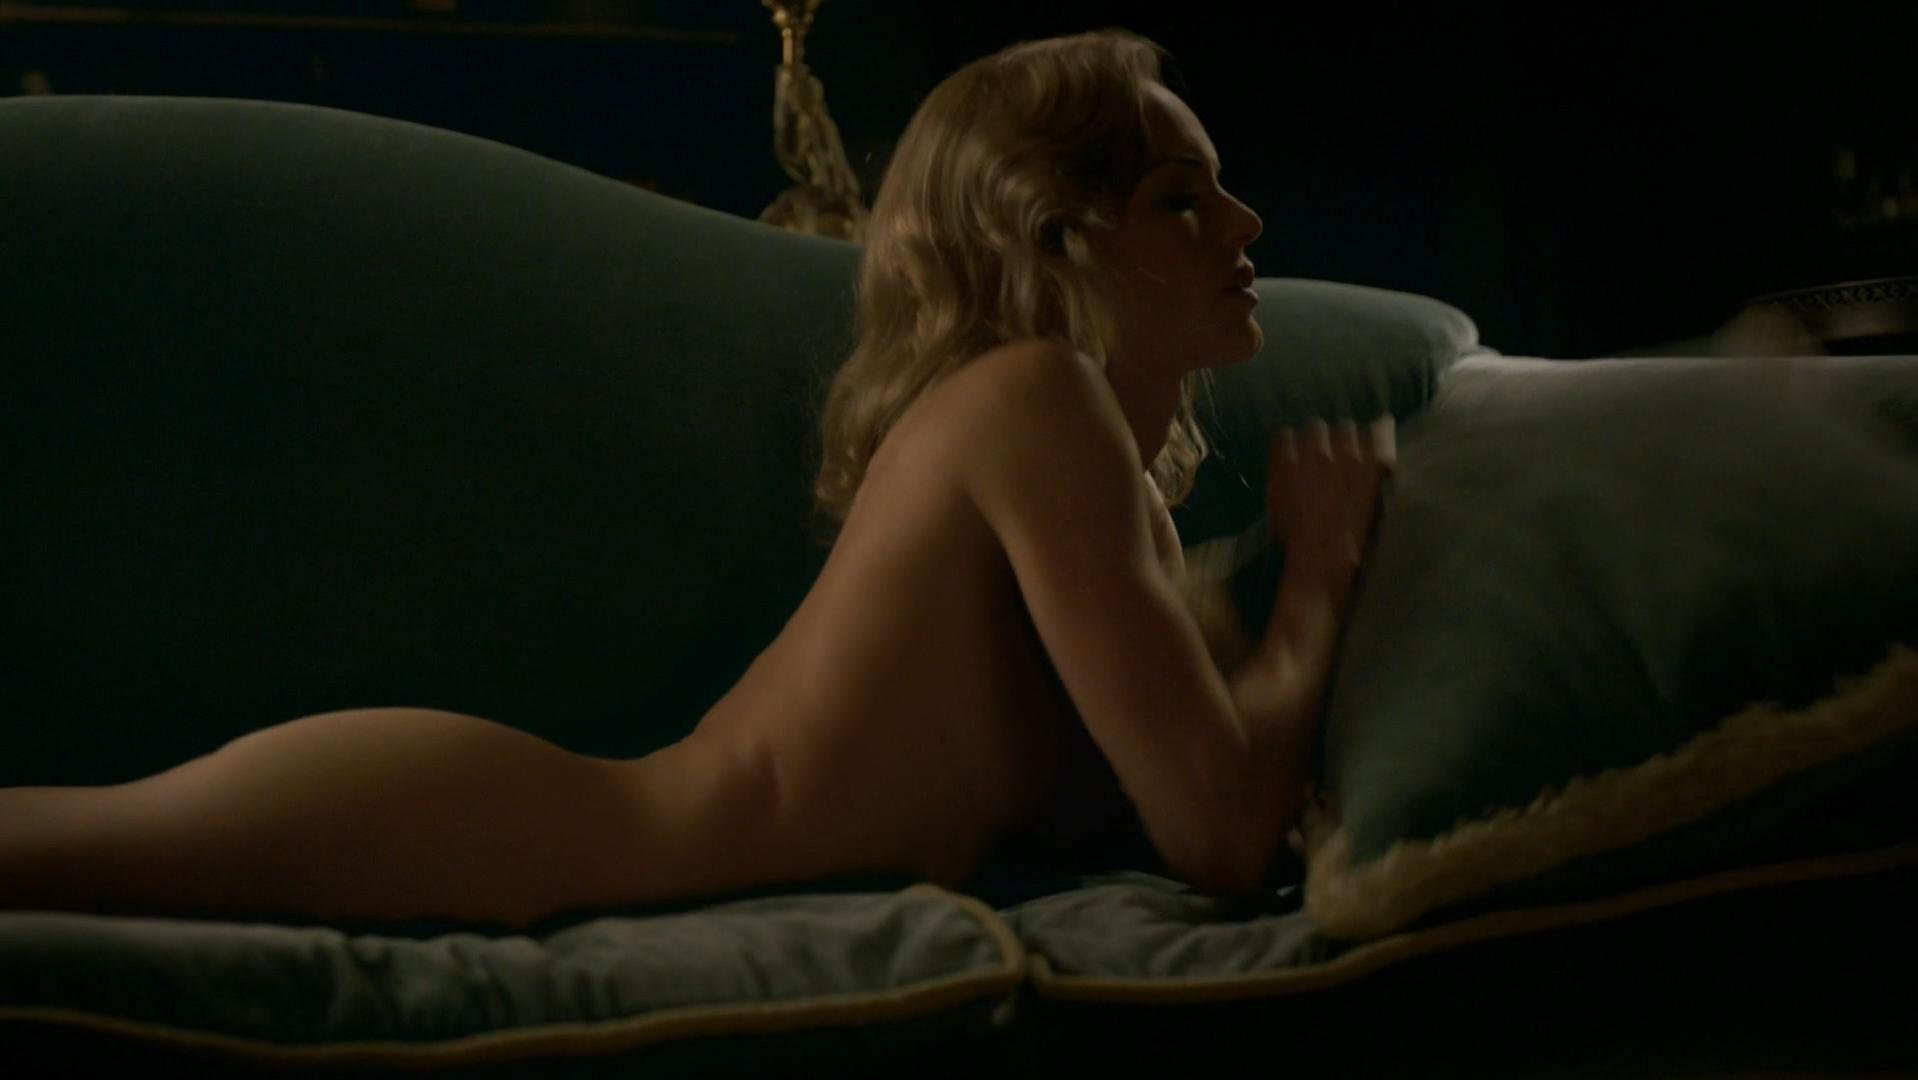 Kate Bosworth - SS-GB s01e02 (2017)